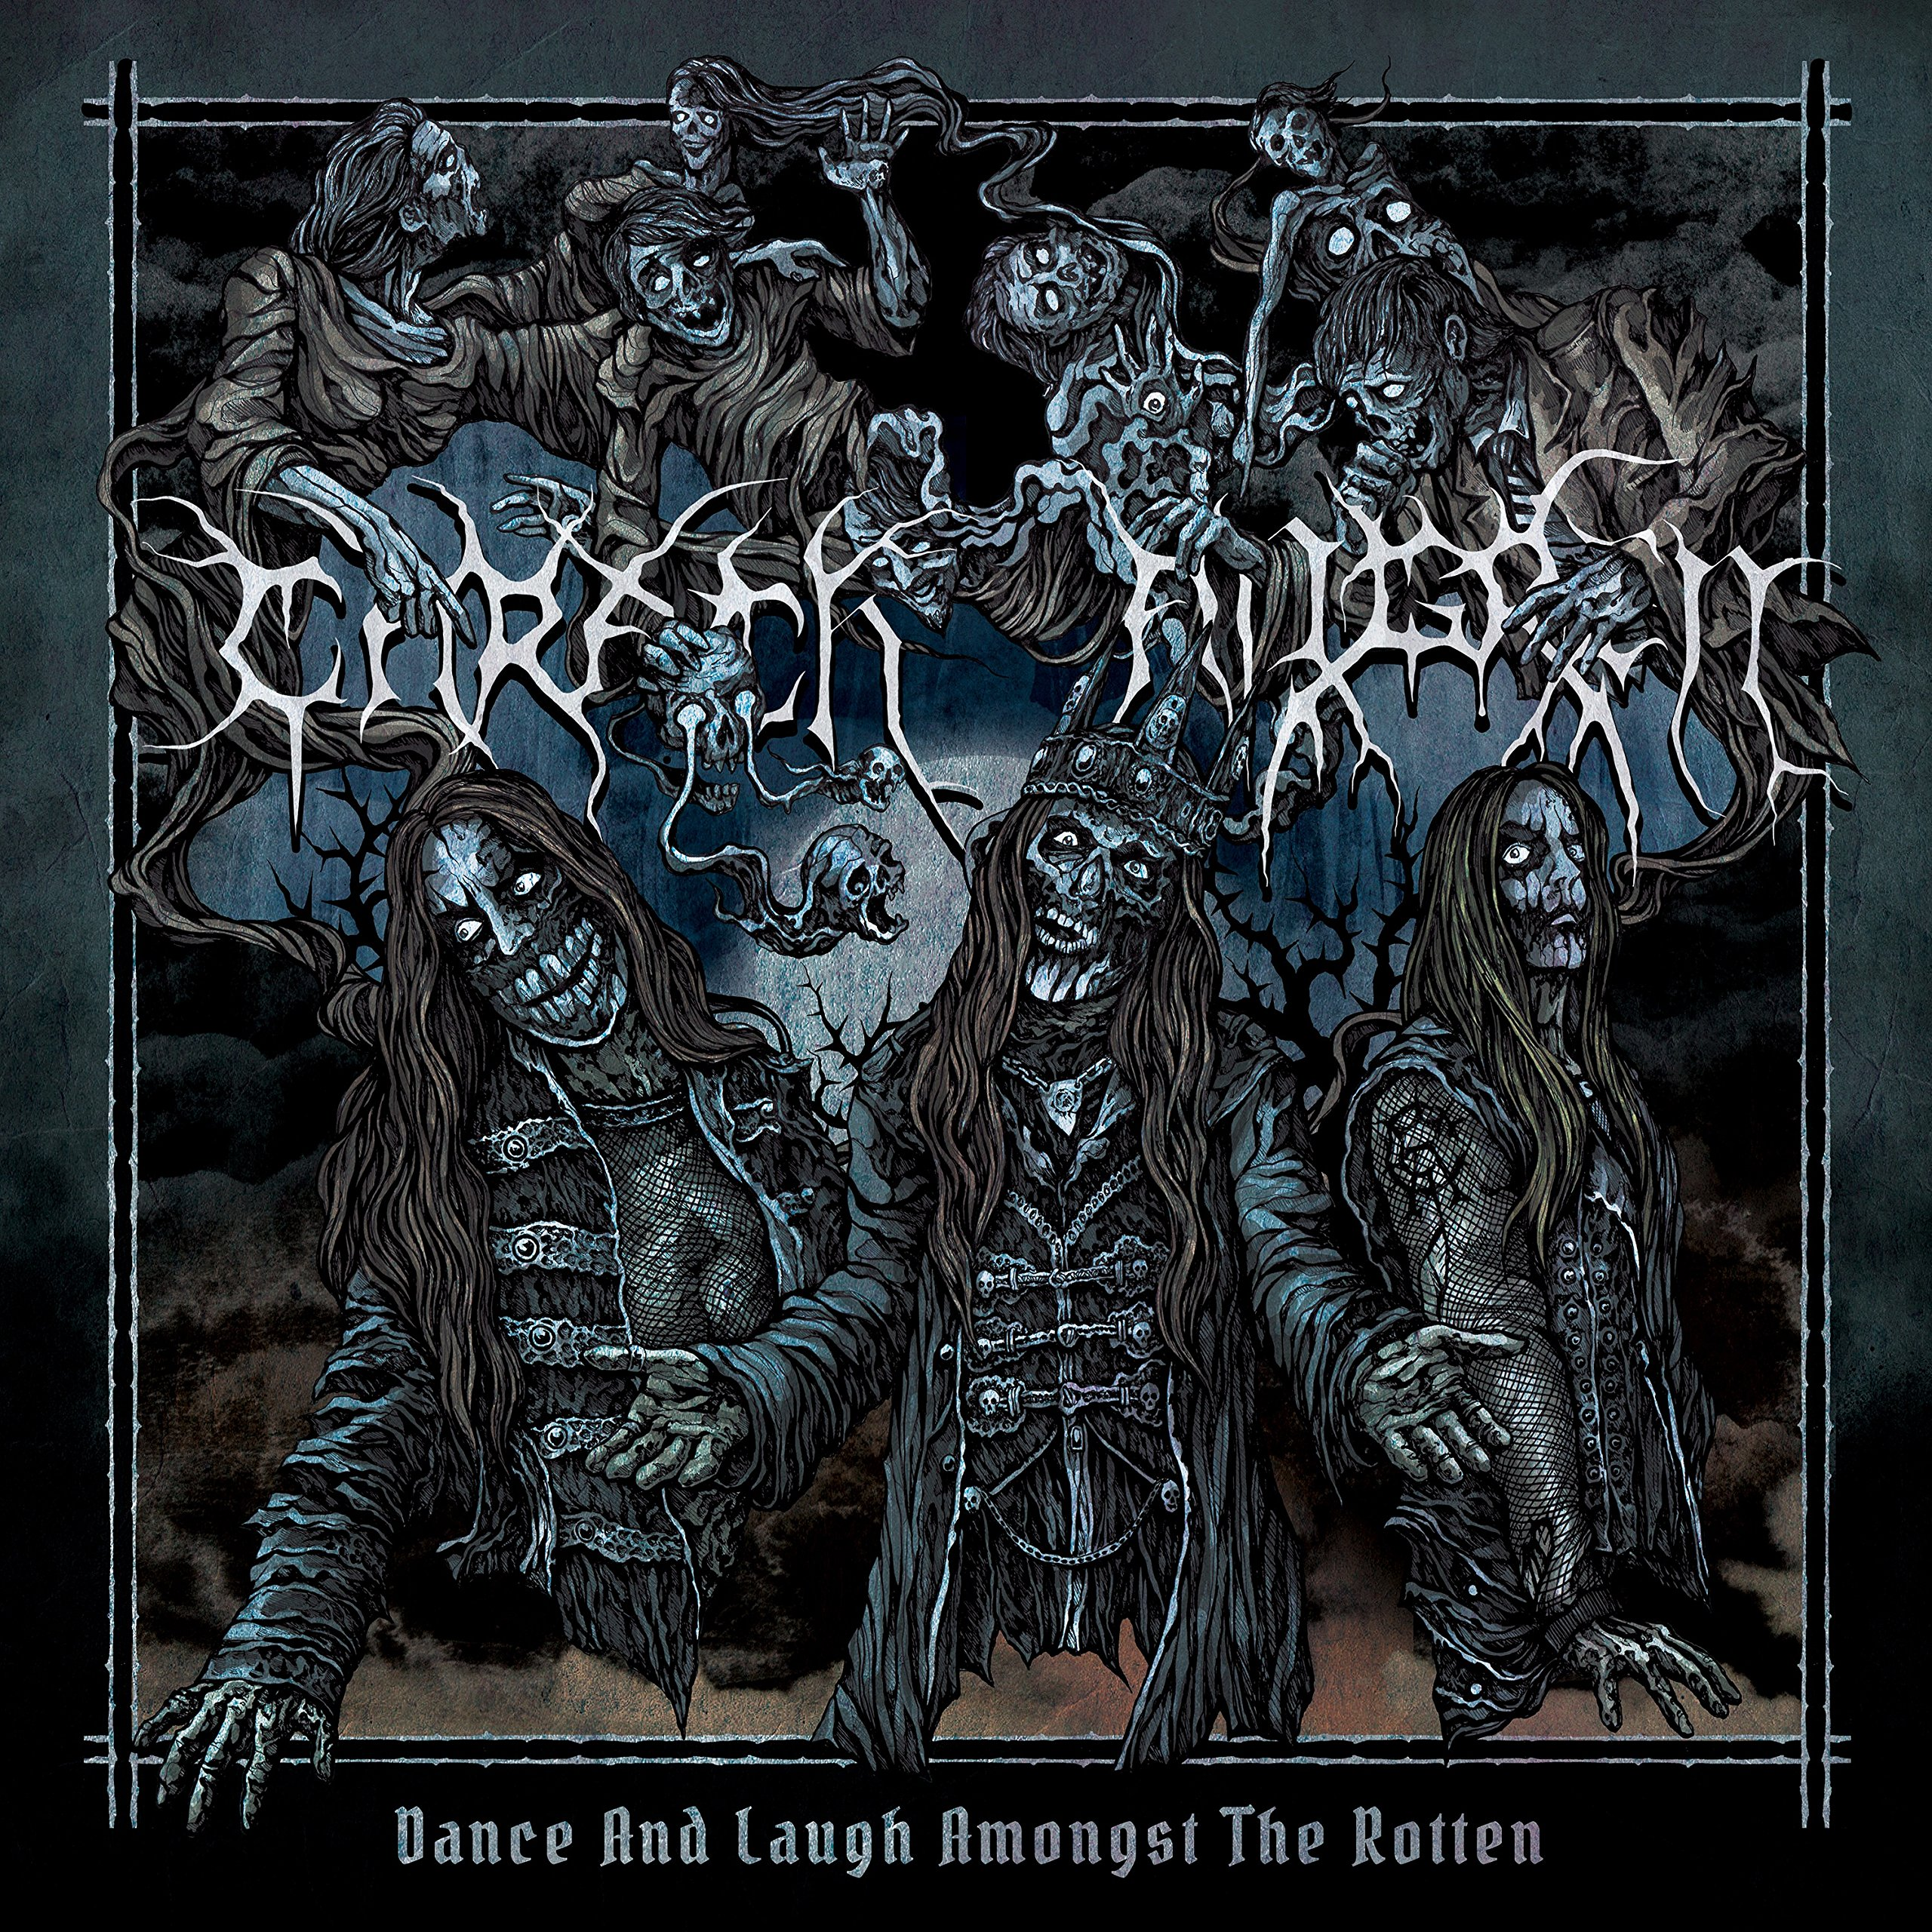 Cassette : Carach Angren - Dance And Laugh Amongst The Rotten (Cassette)